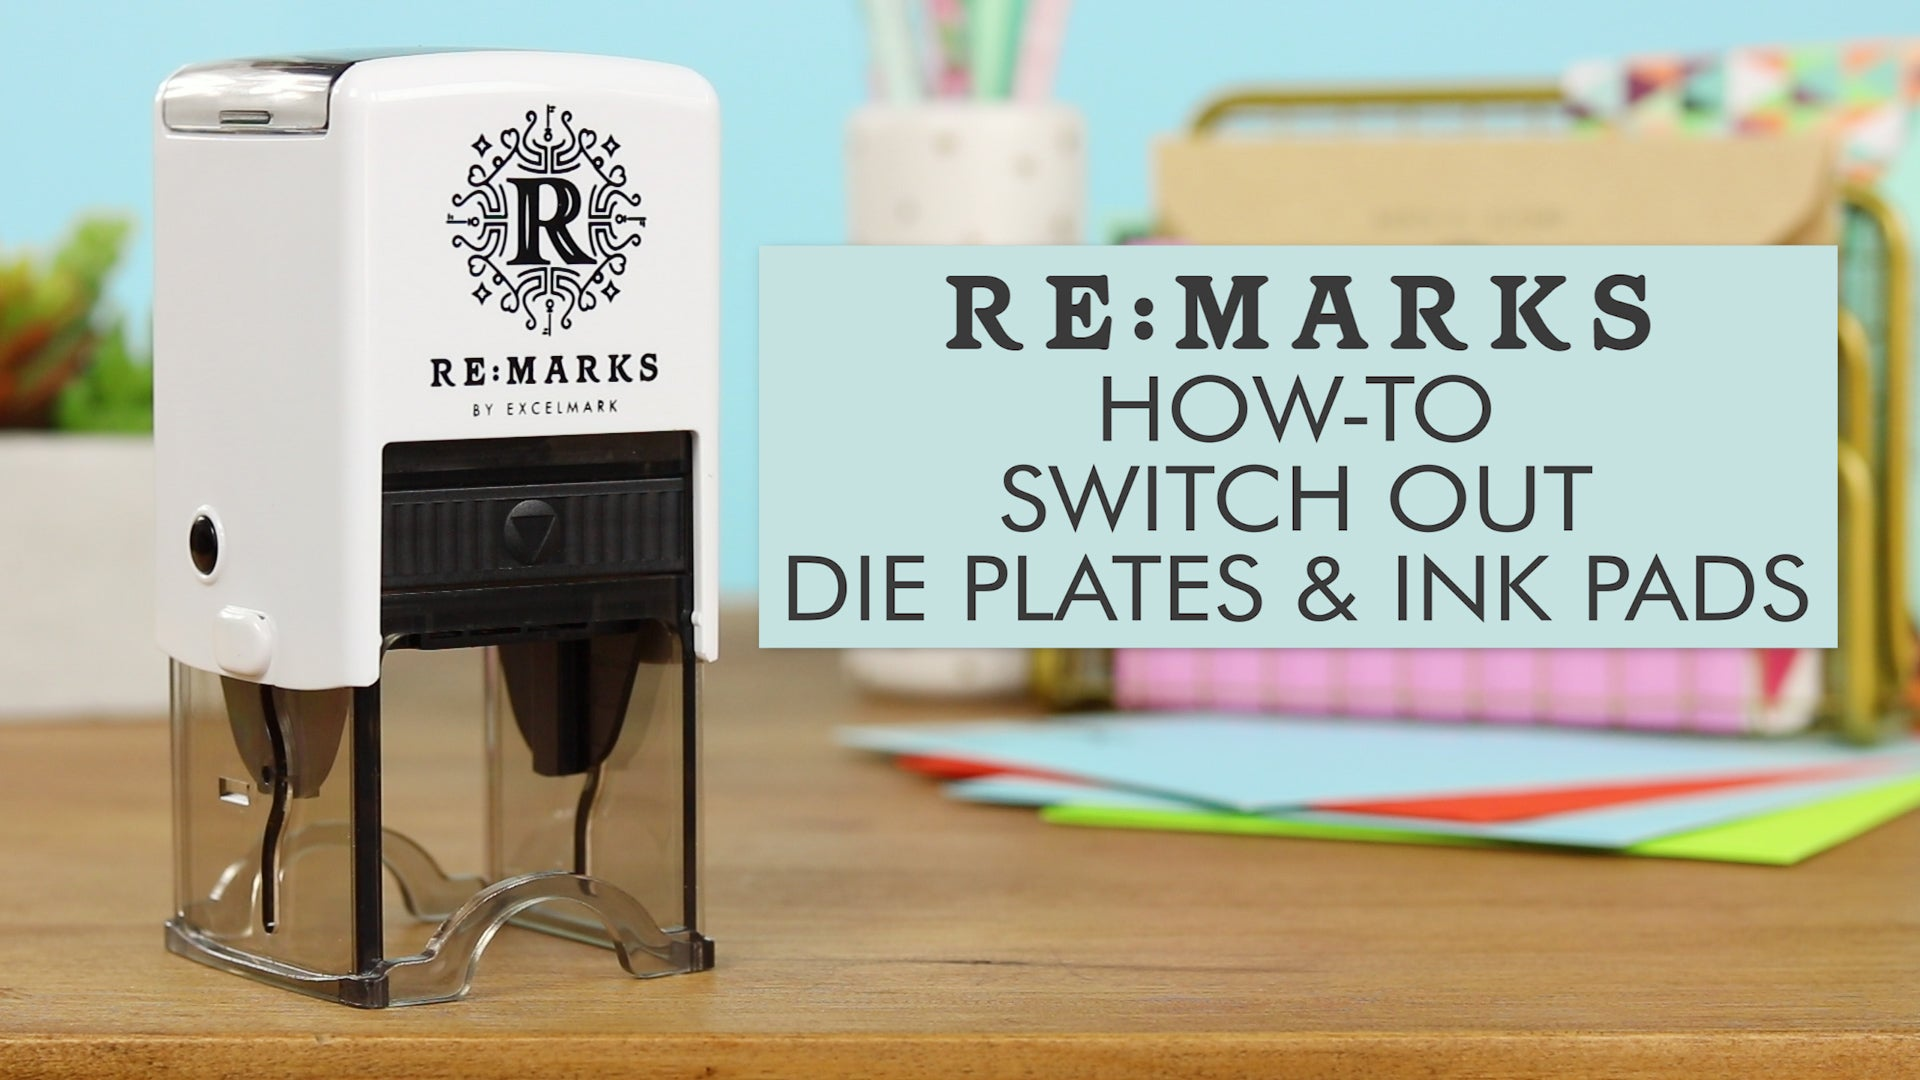 How to Change Re:Marks Die Plates